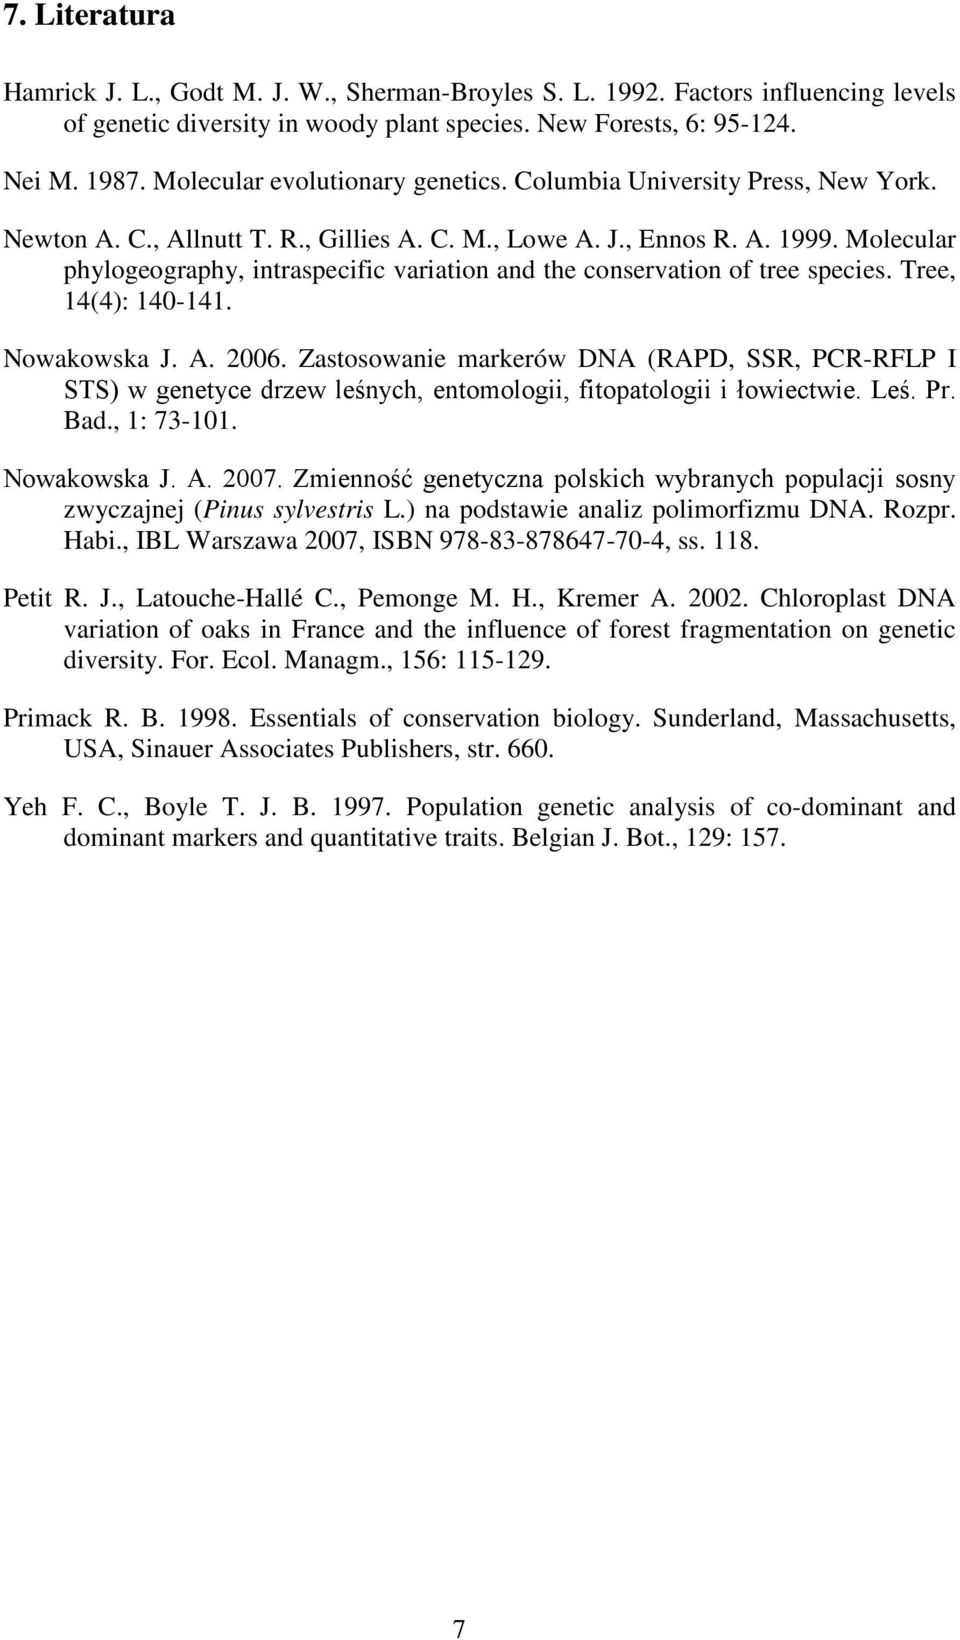 Molecular phylogeography, intraspecific variation and the conservation of tree species. Tree, 14(4): 140-141. Nowakowska J. A. 2006.